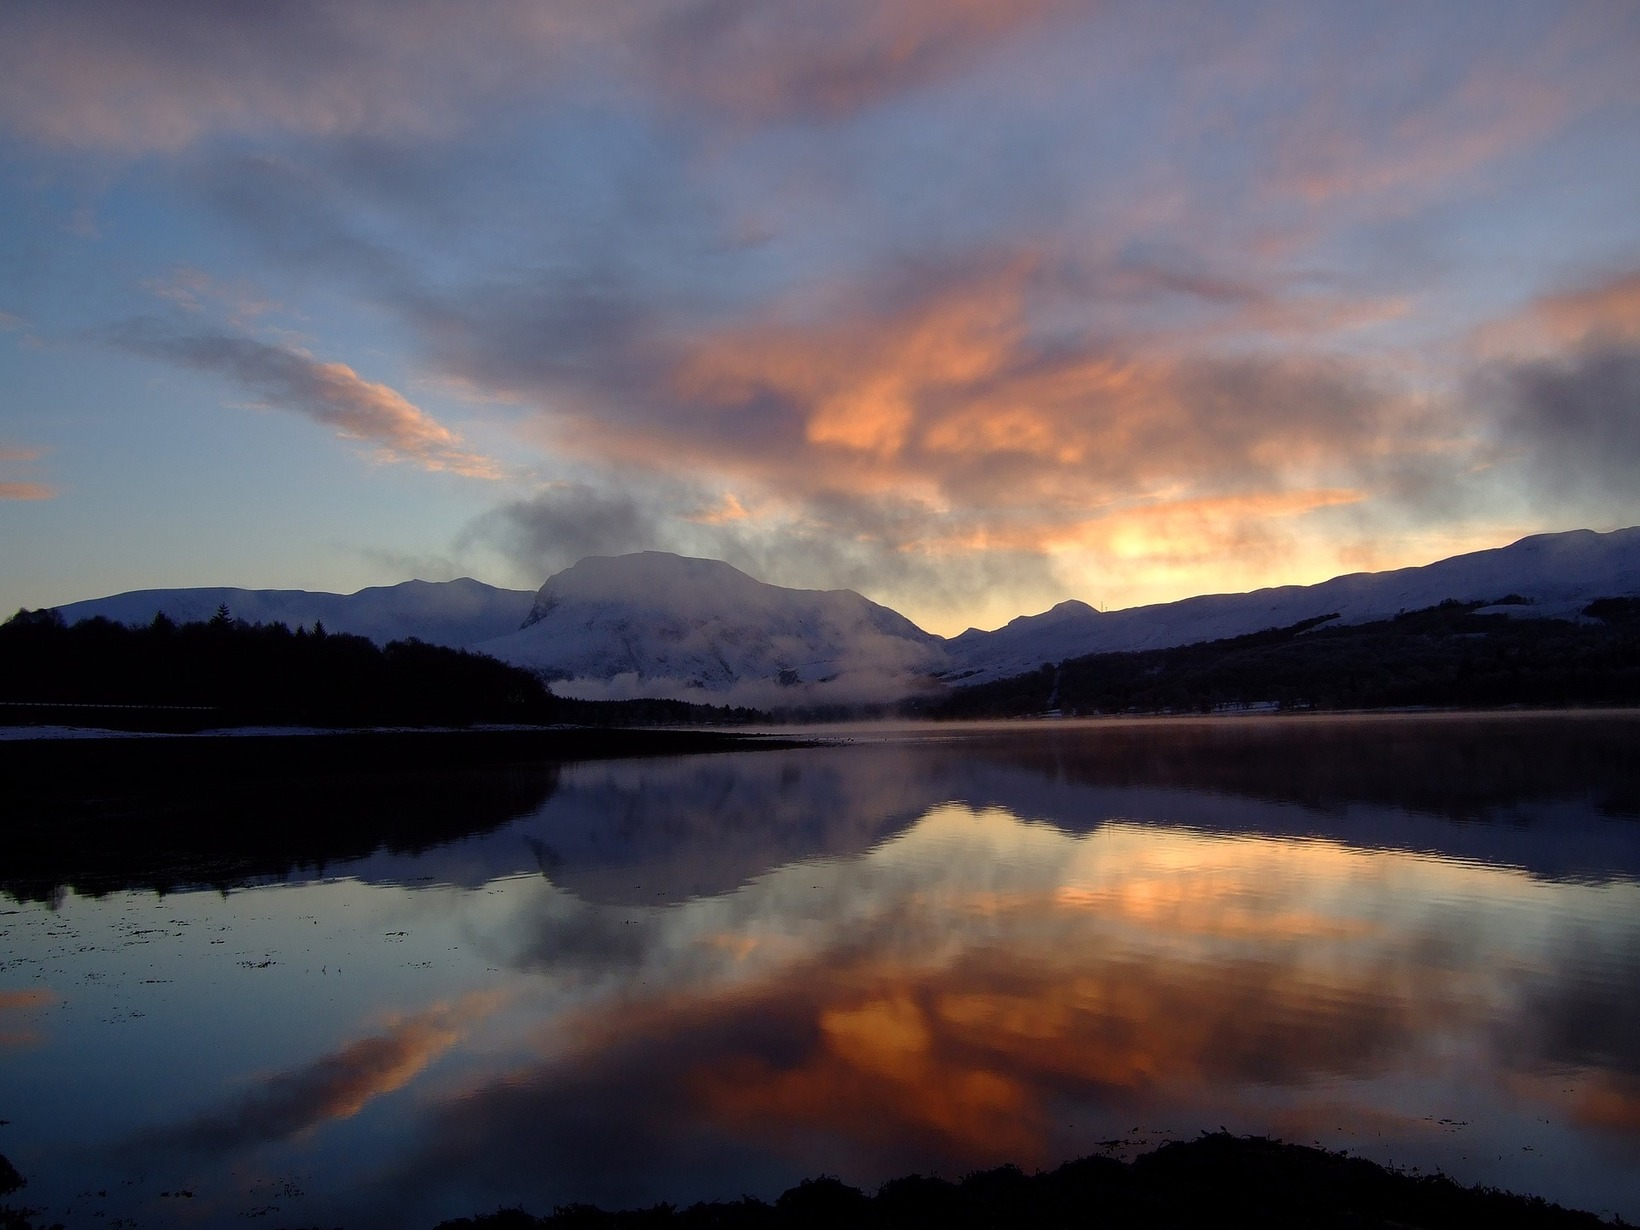 Book your perfect Highland journey today